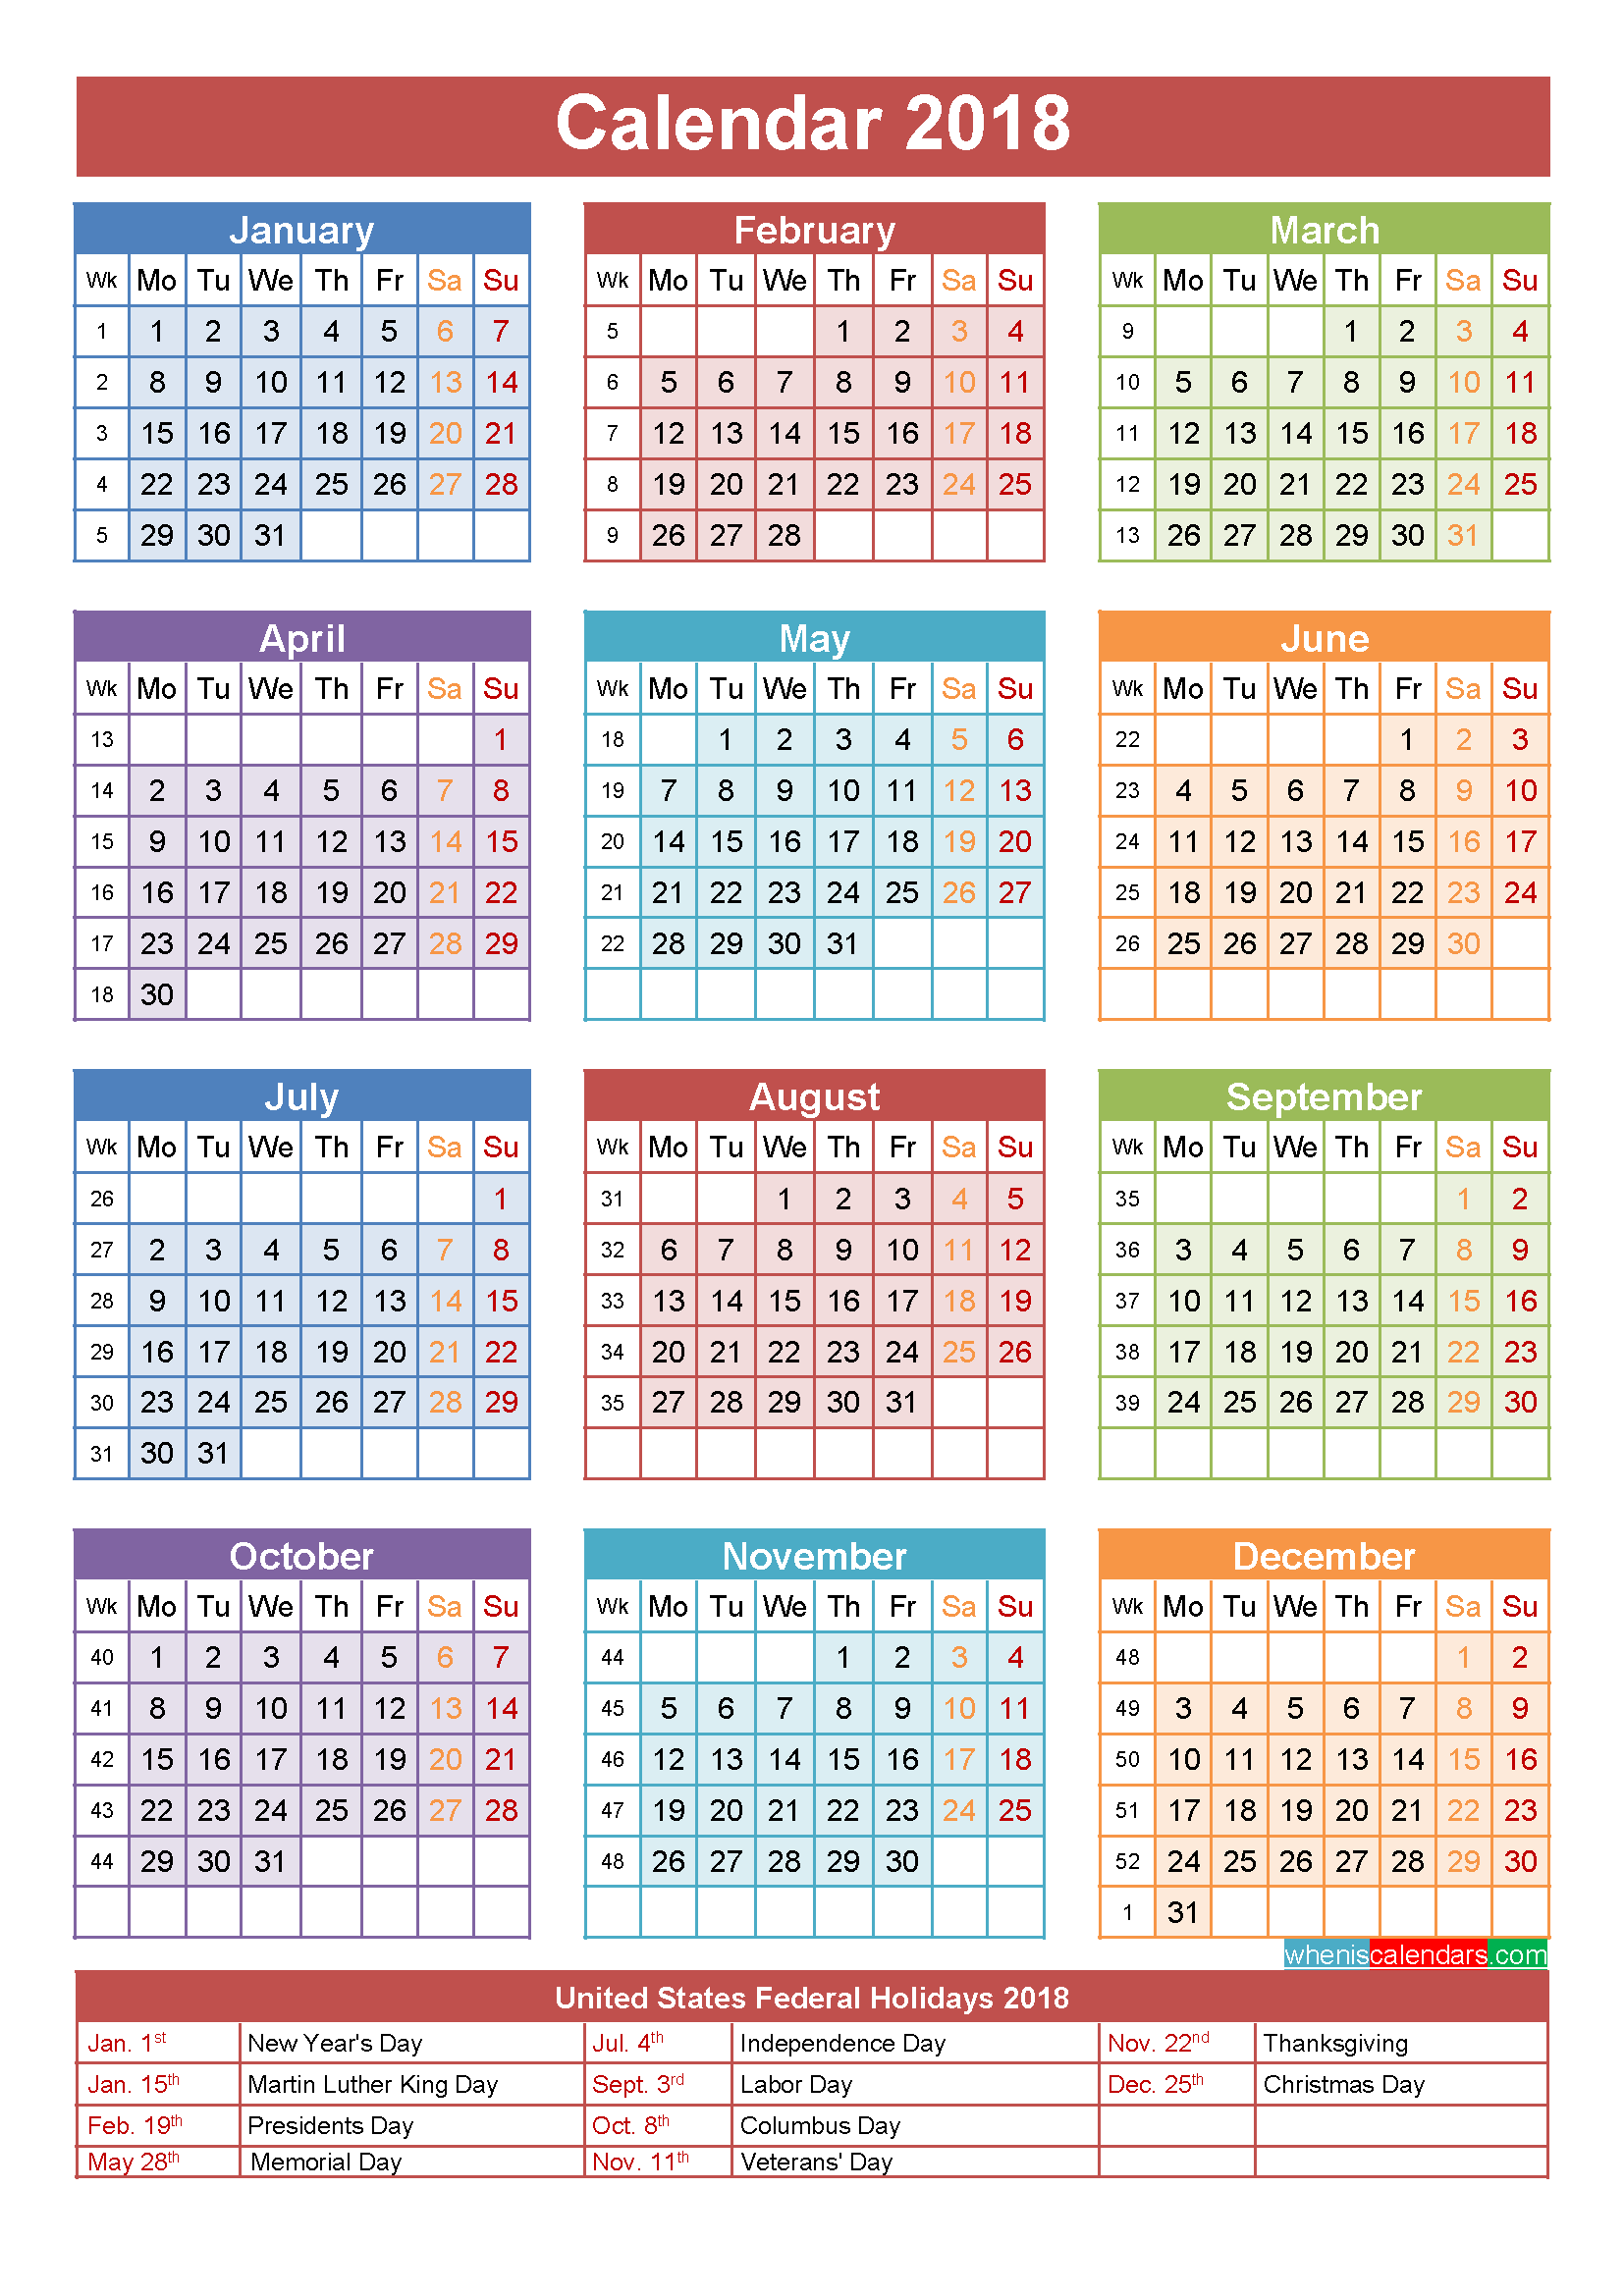 Calendar 2018 india - 2018 Calendar printable for Free Download ...